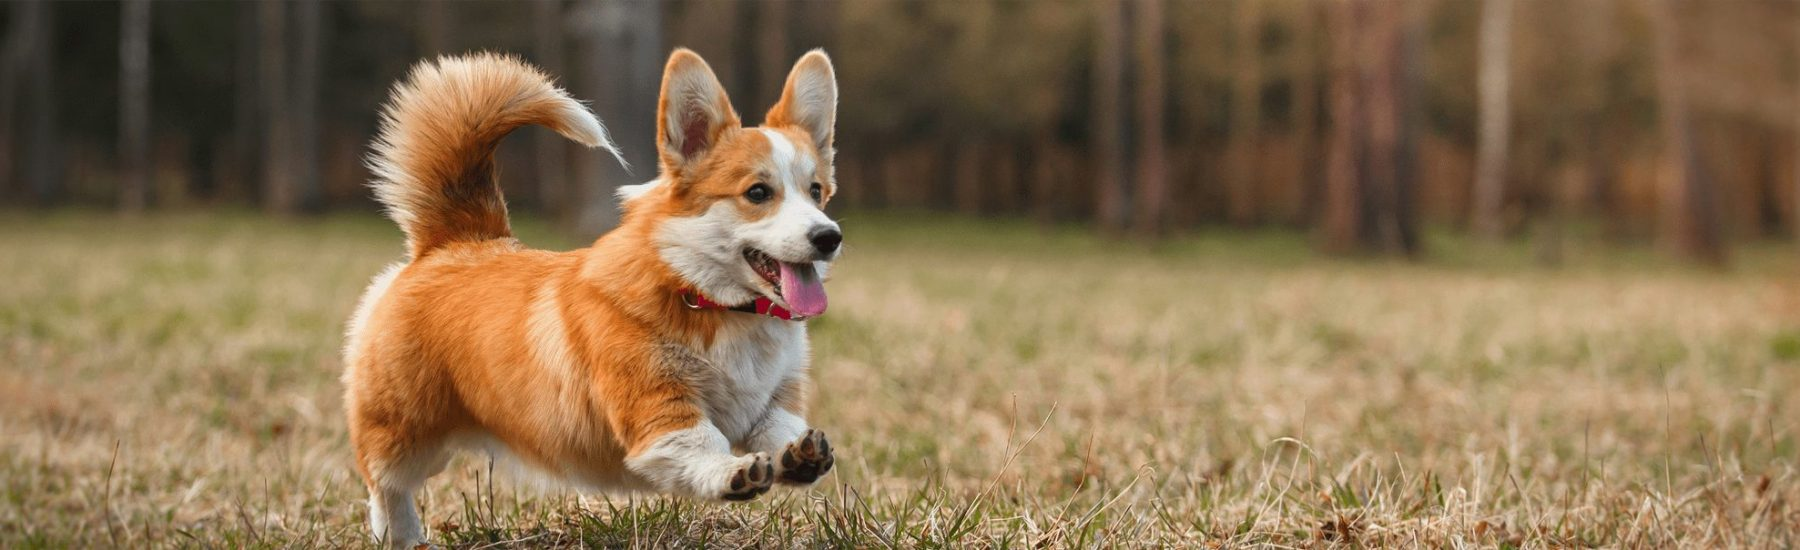 A Corgi dog running in an open field